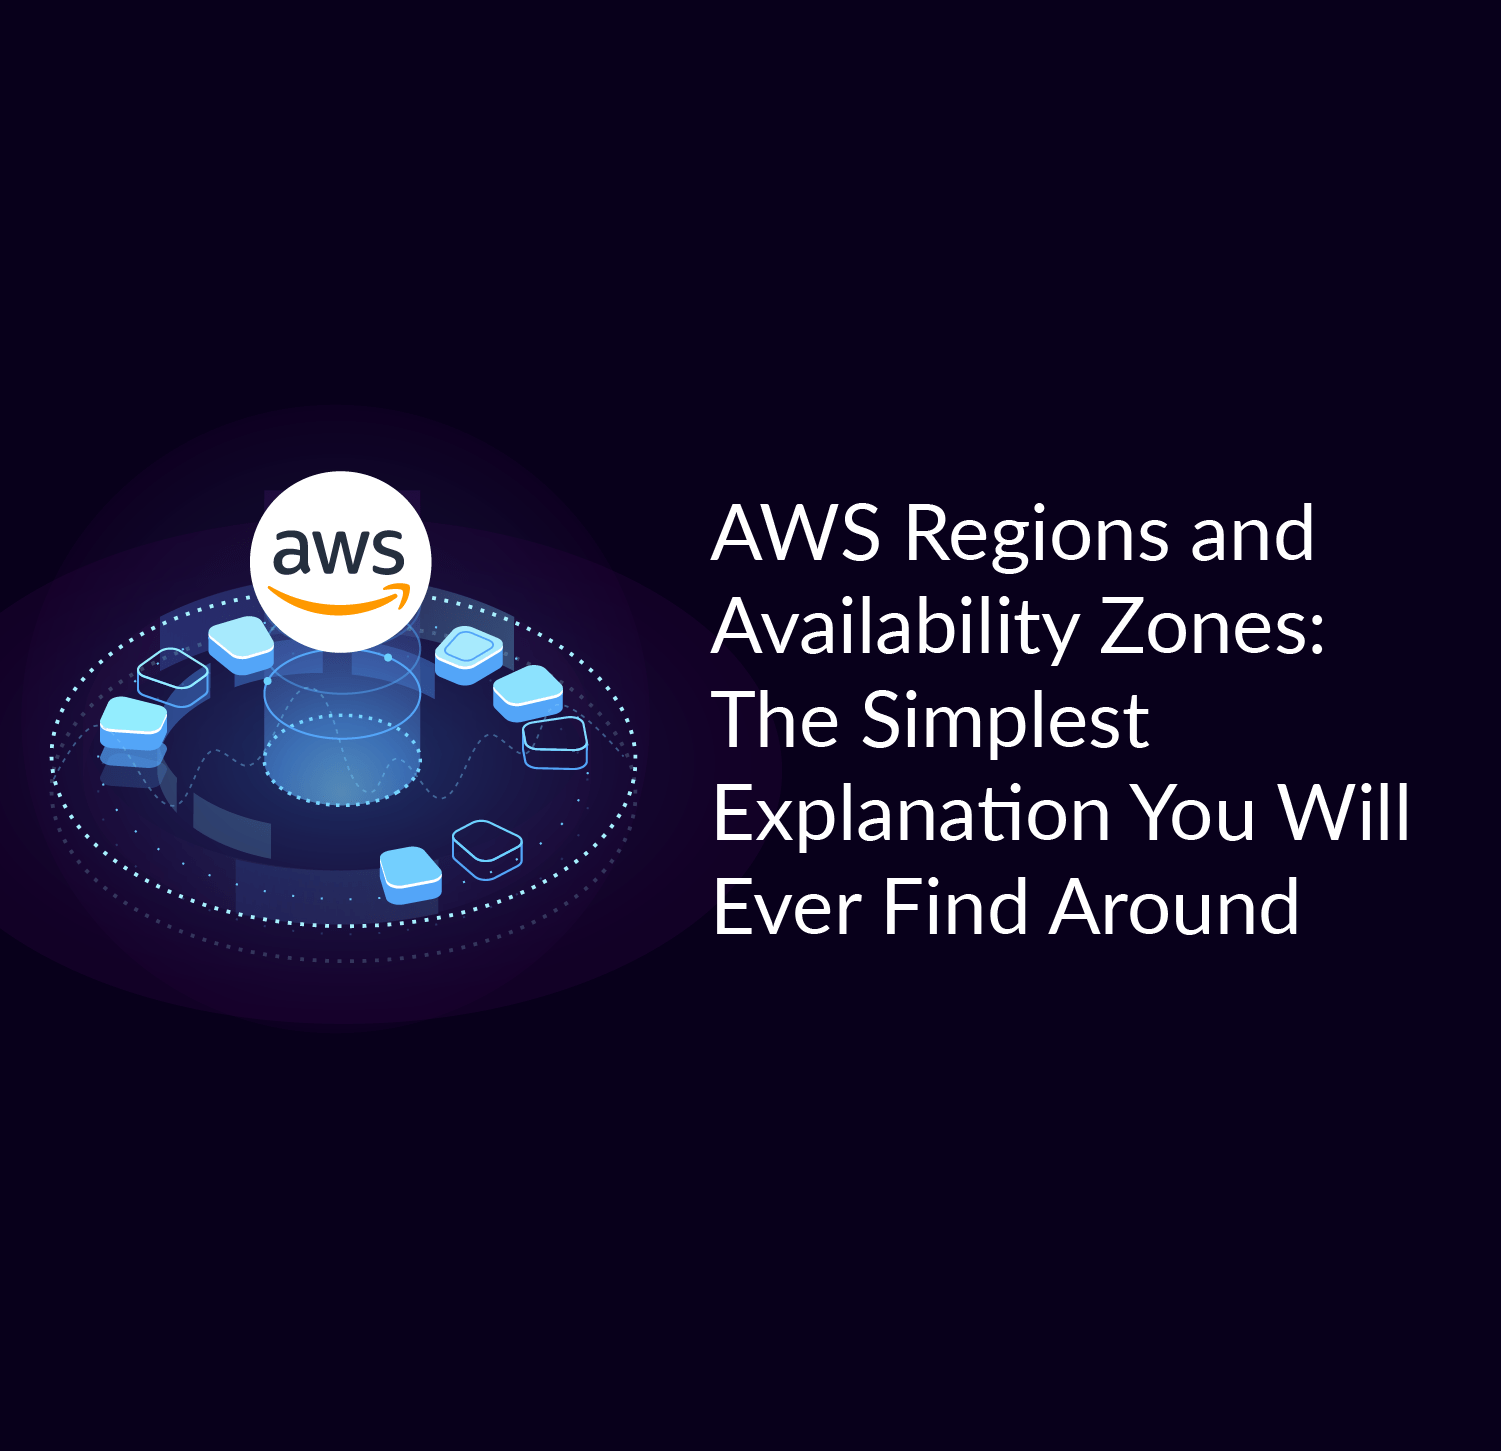 Aws Regions And Availability Zones The Simplest Explanation